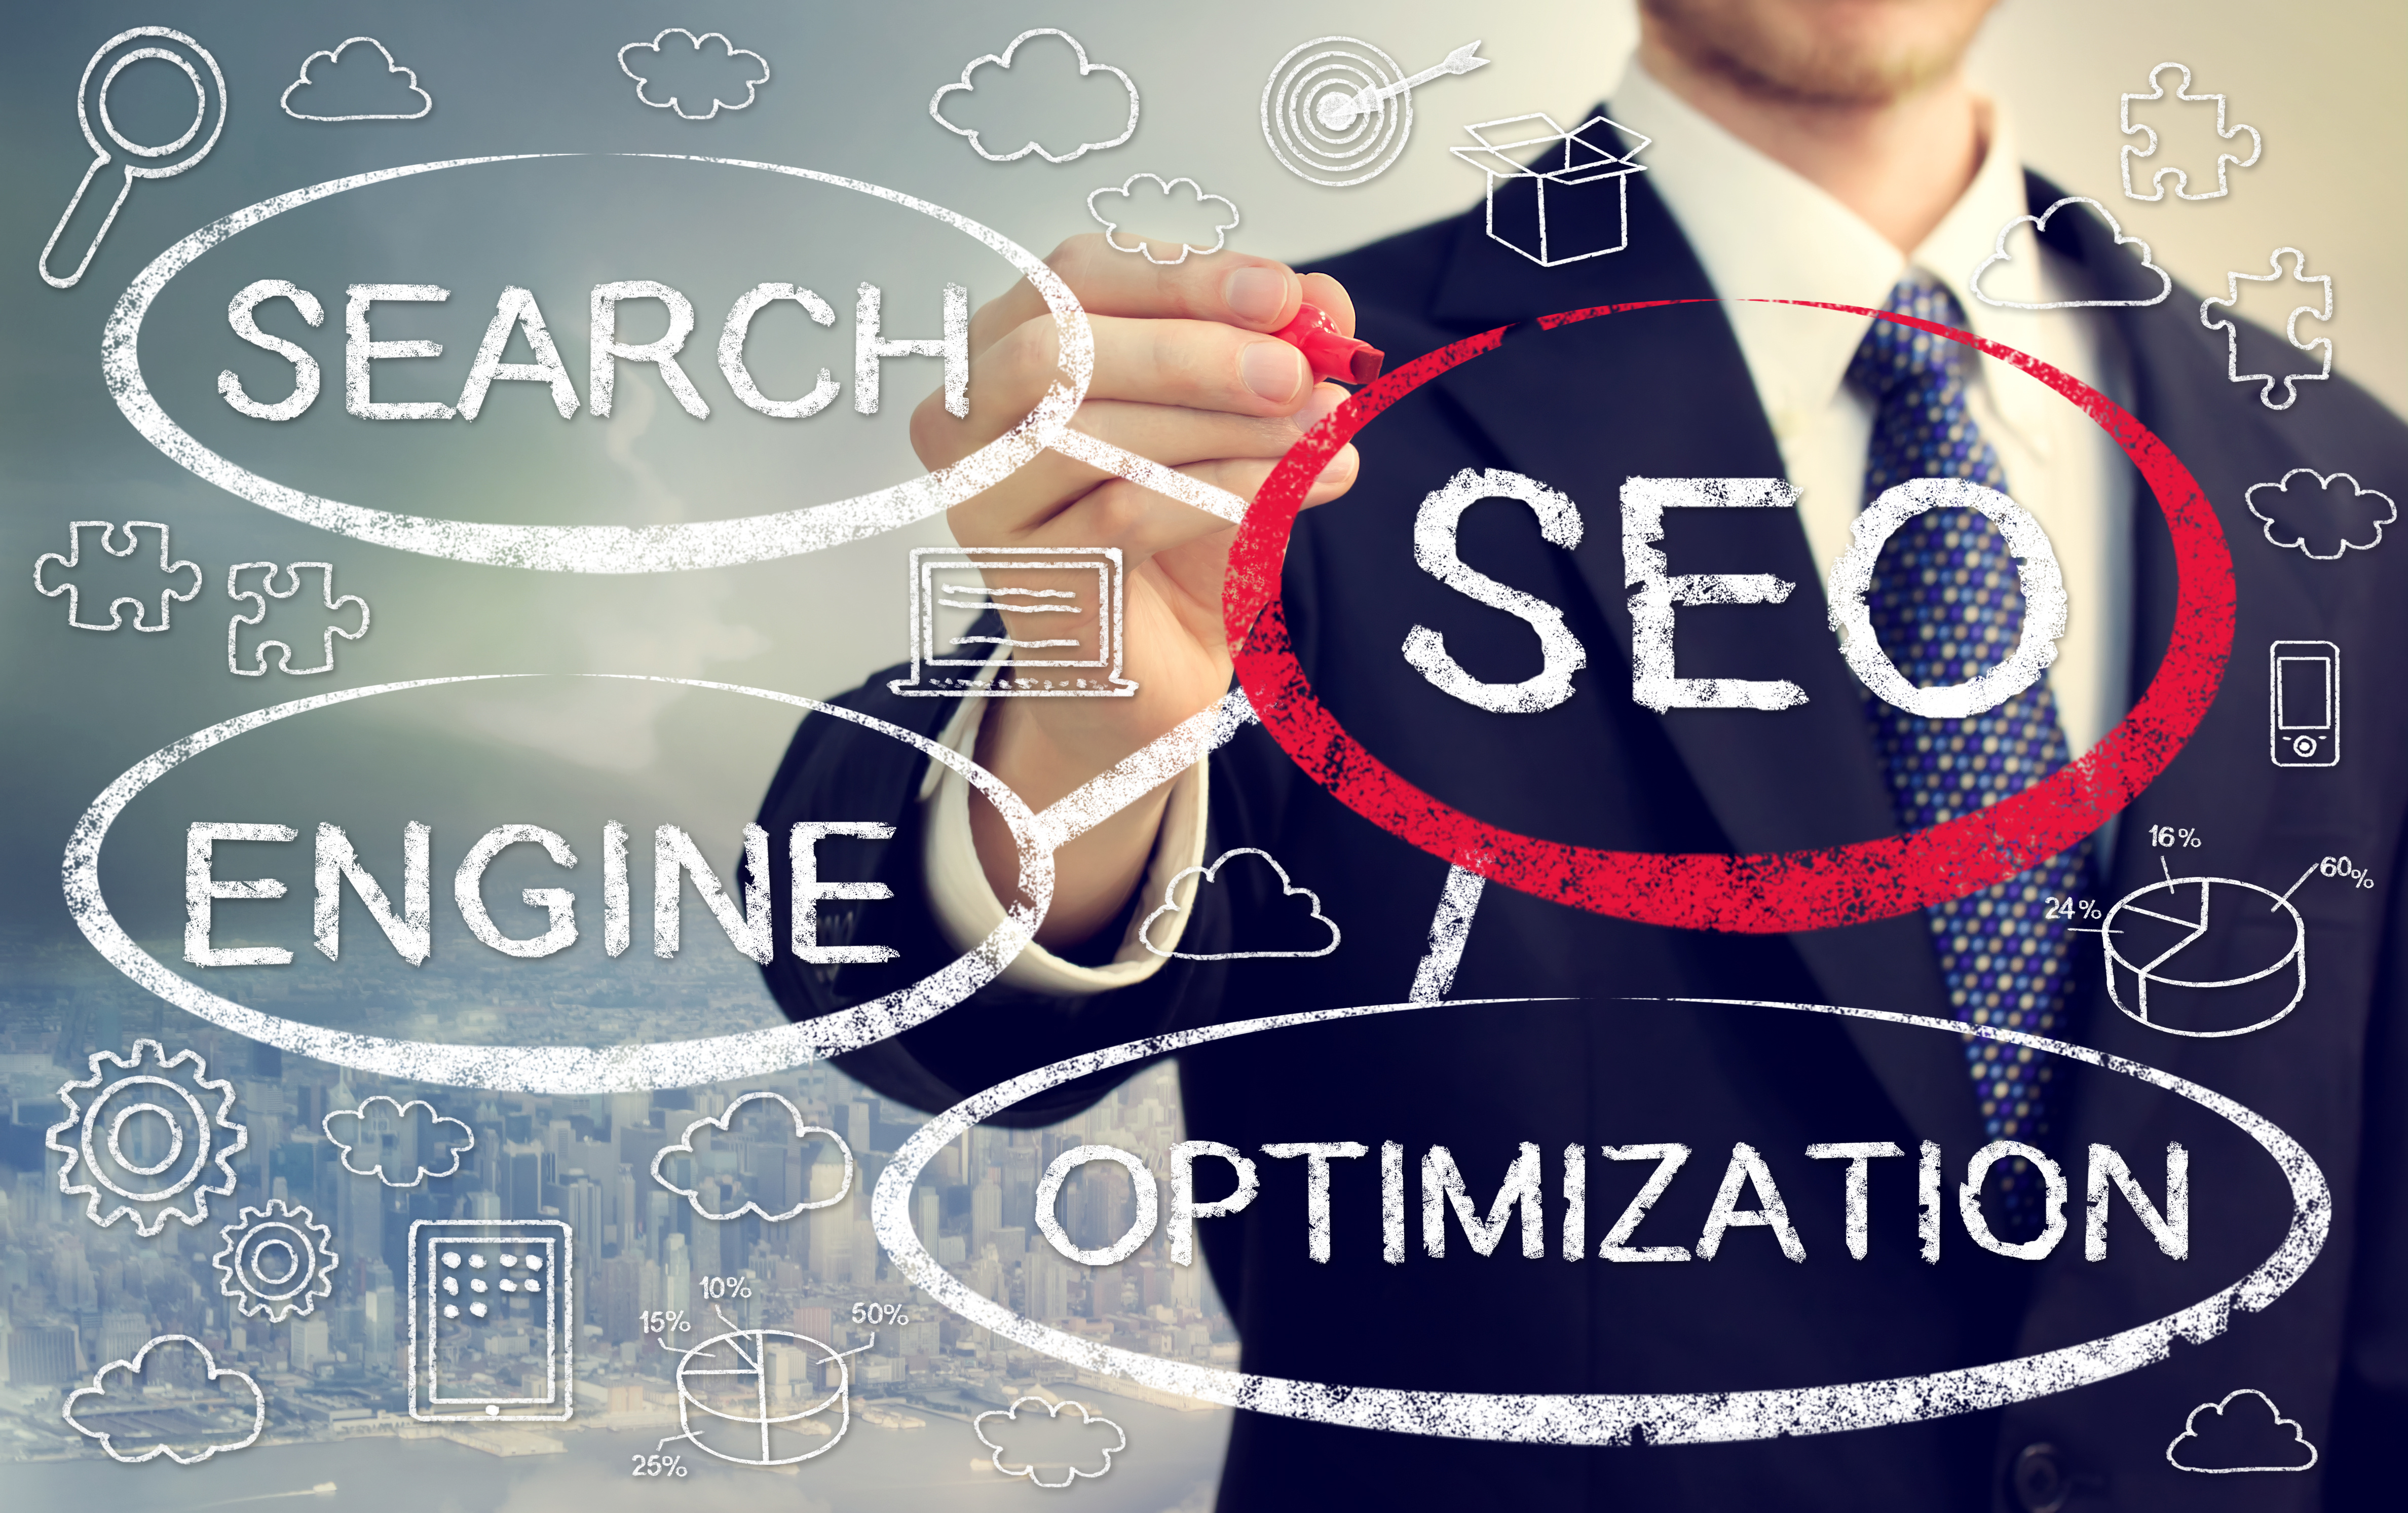 3 SEO Tips For Lawyers - Leads For Attorneys